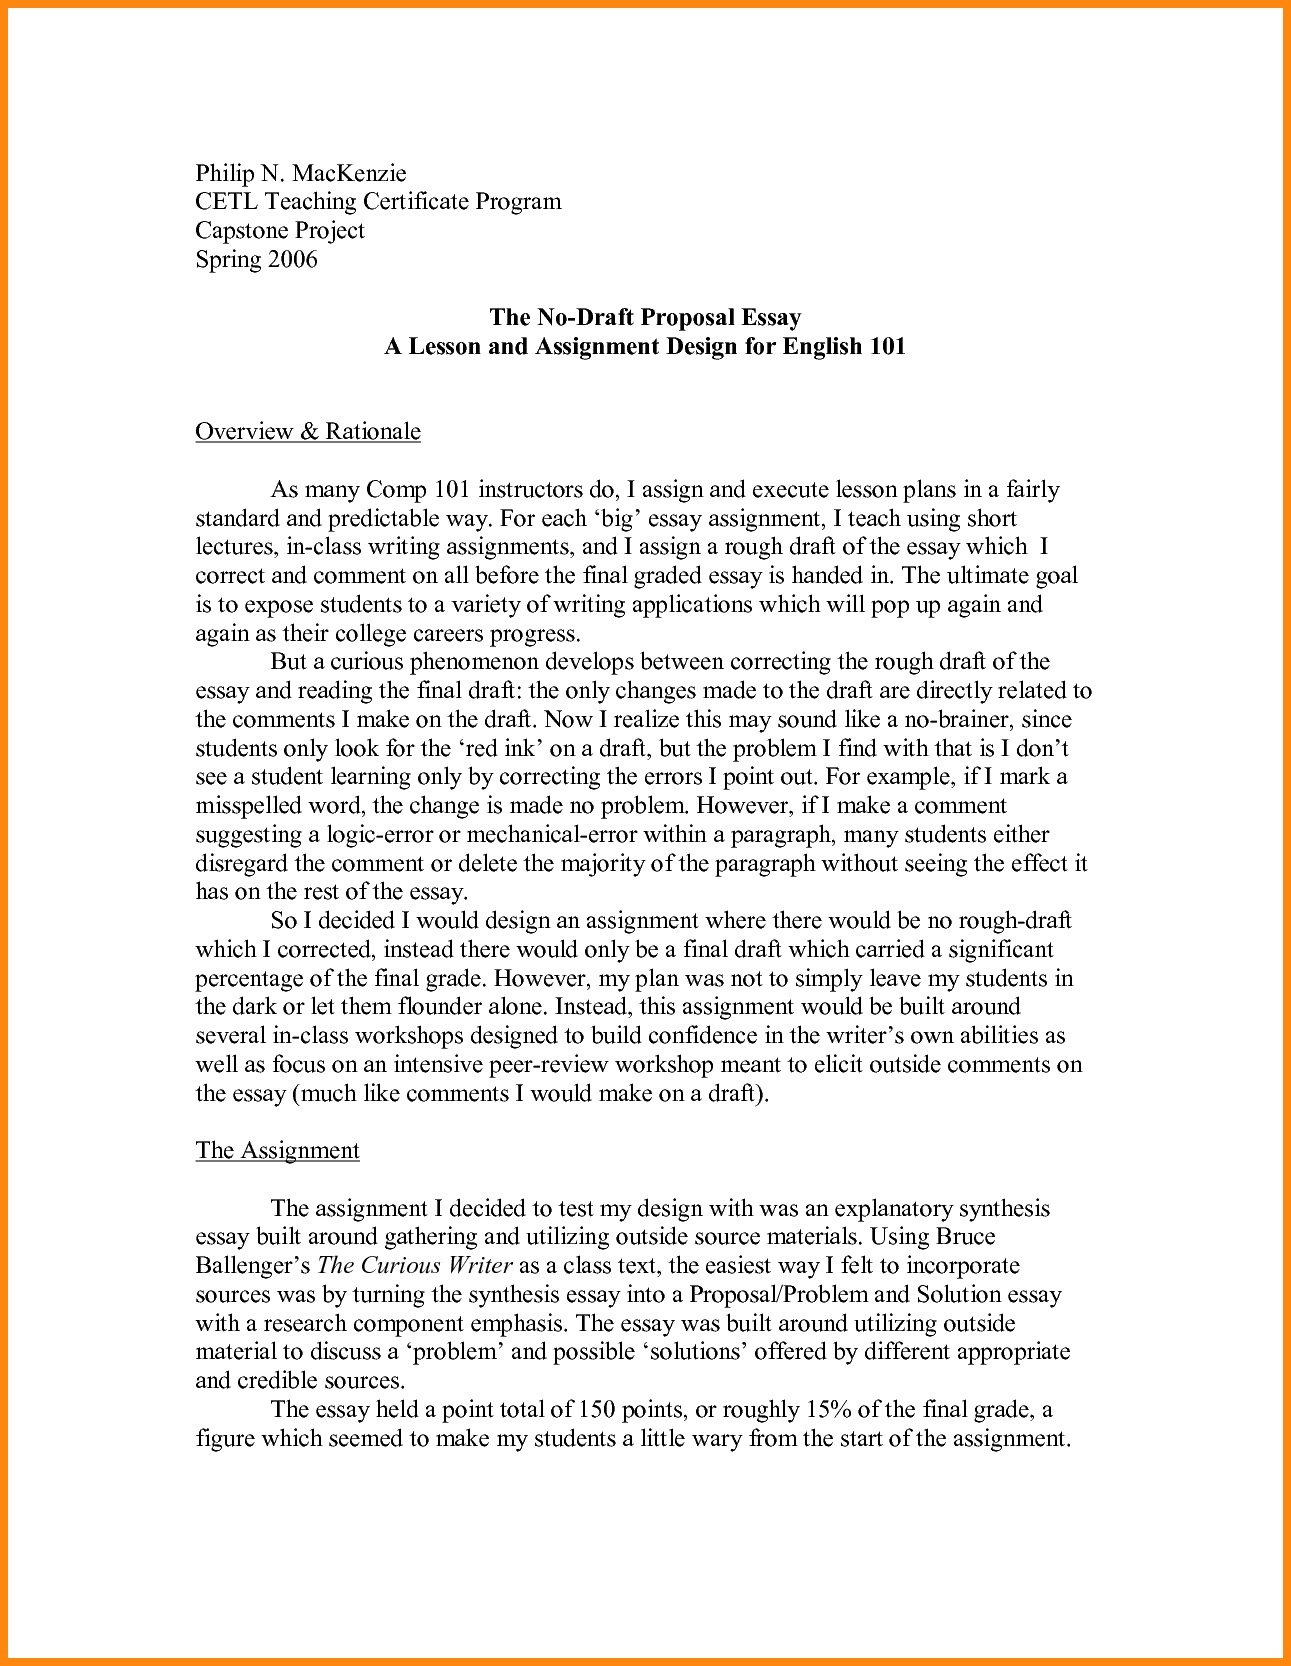 019 Research Paper Papers Topics For Finance Topic Proposal Example Essay At Phenomenal High School Students About Elementary Education Hot In Computer Science Full